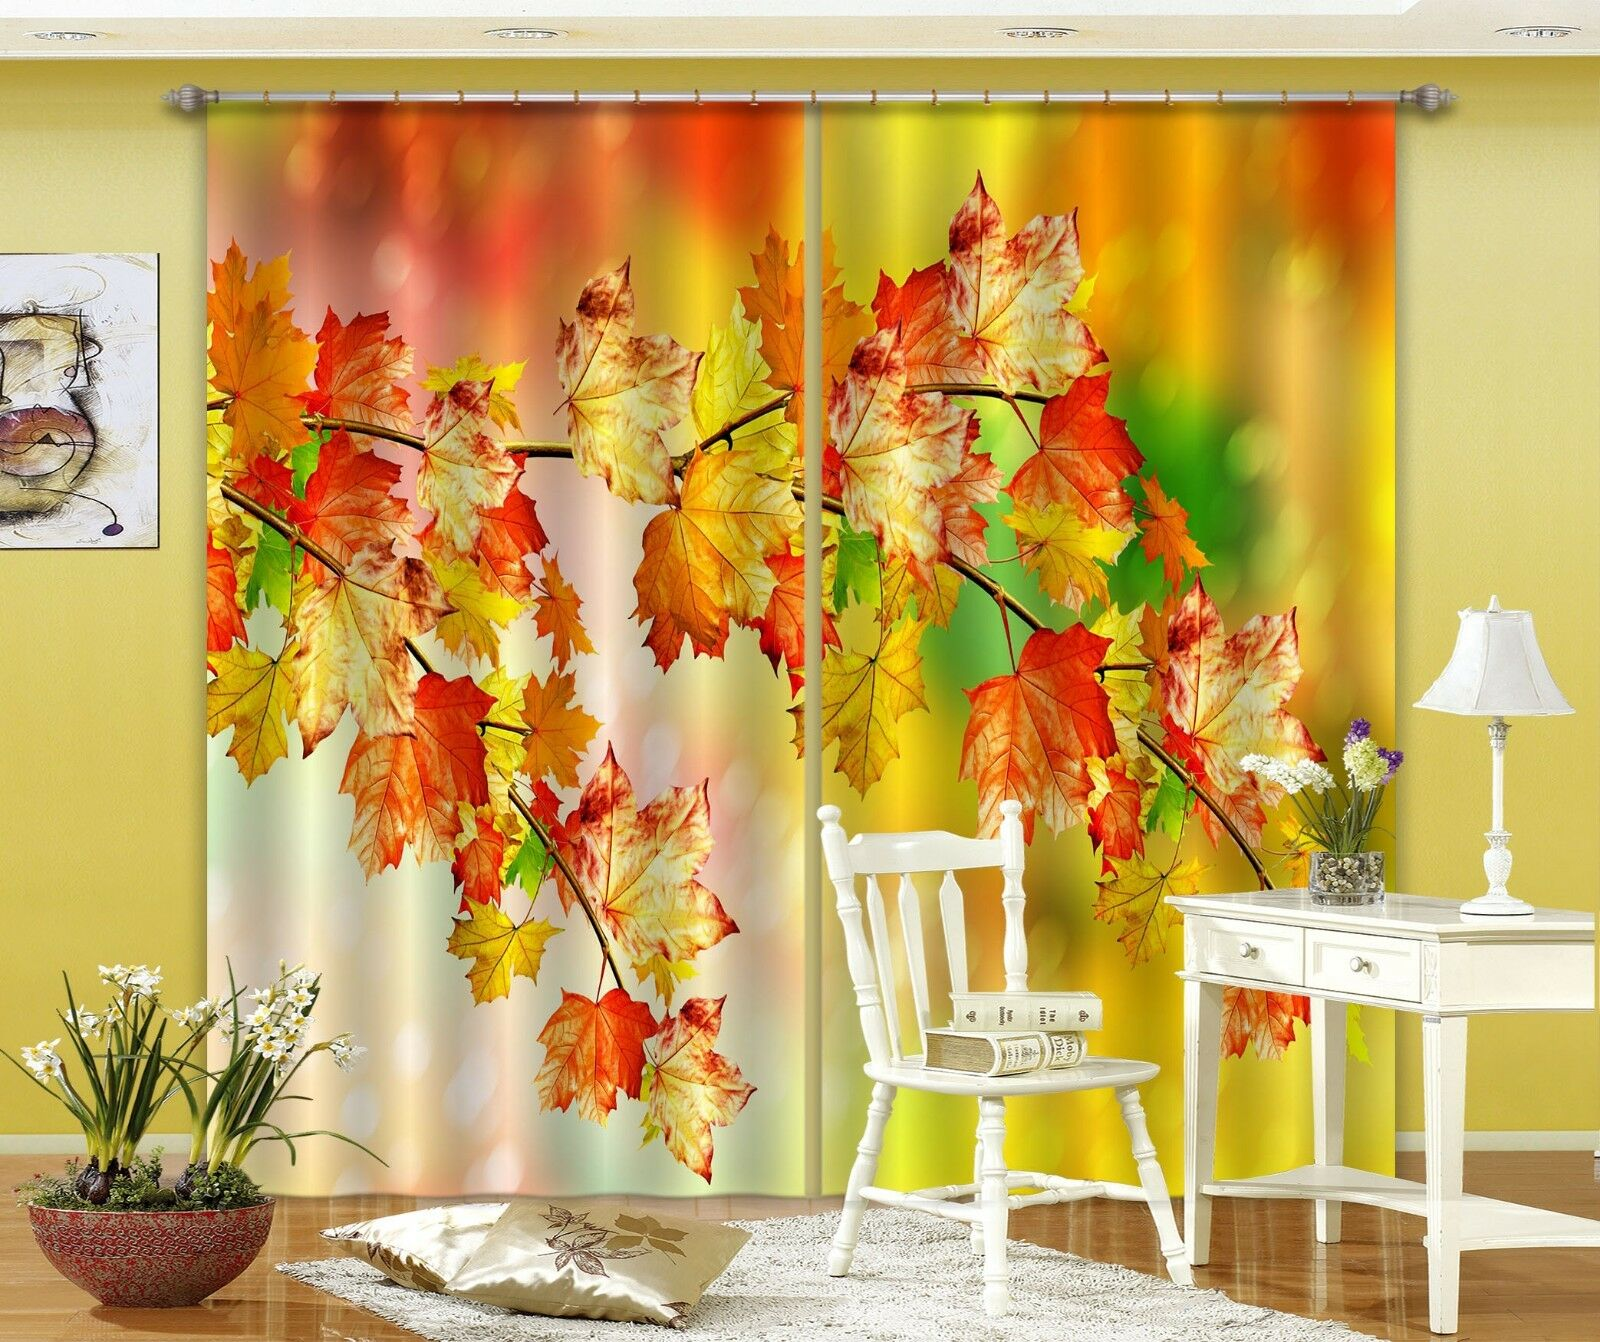 3D Maple Leaf 7 Blockout Photo Curtain Printing Curtains Drapes Fabric Window CA